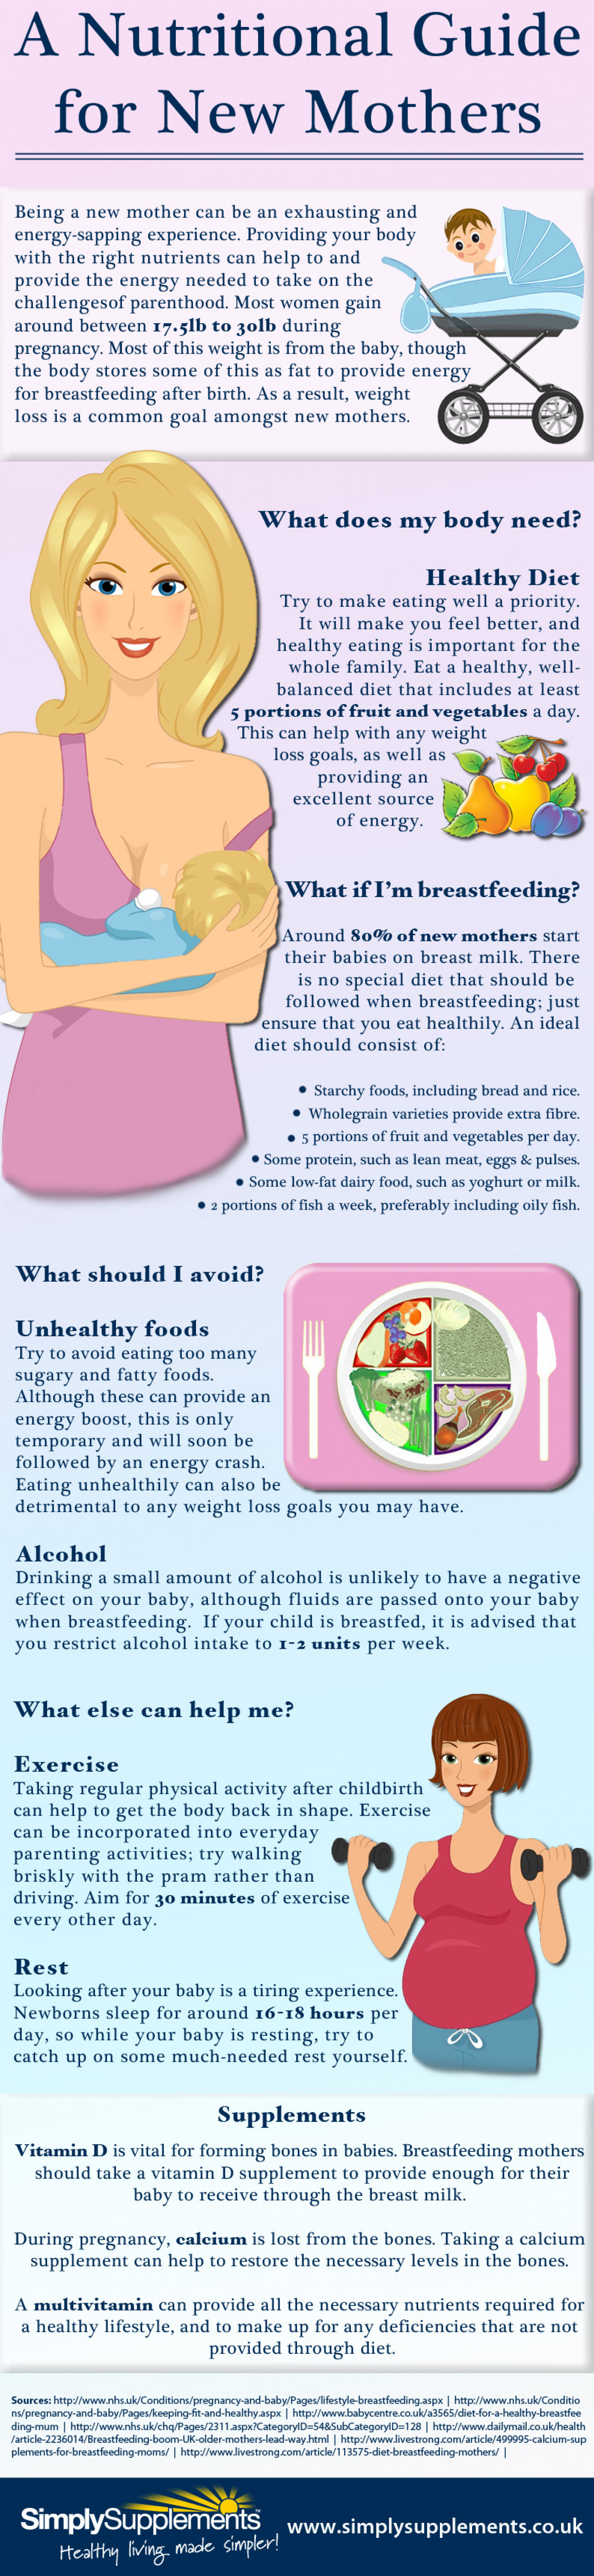 A Nutritional Guide for New Mothers Infographic